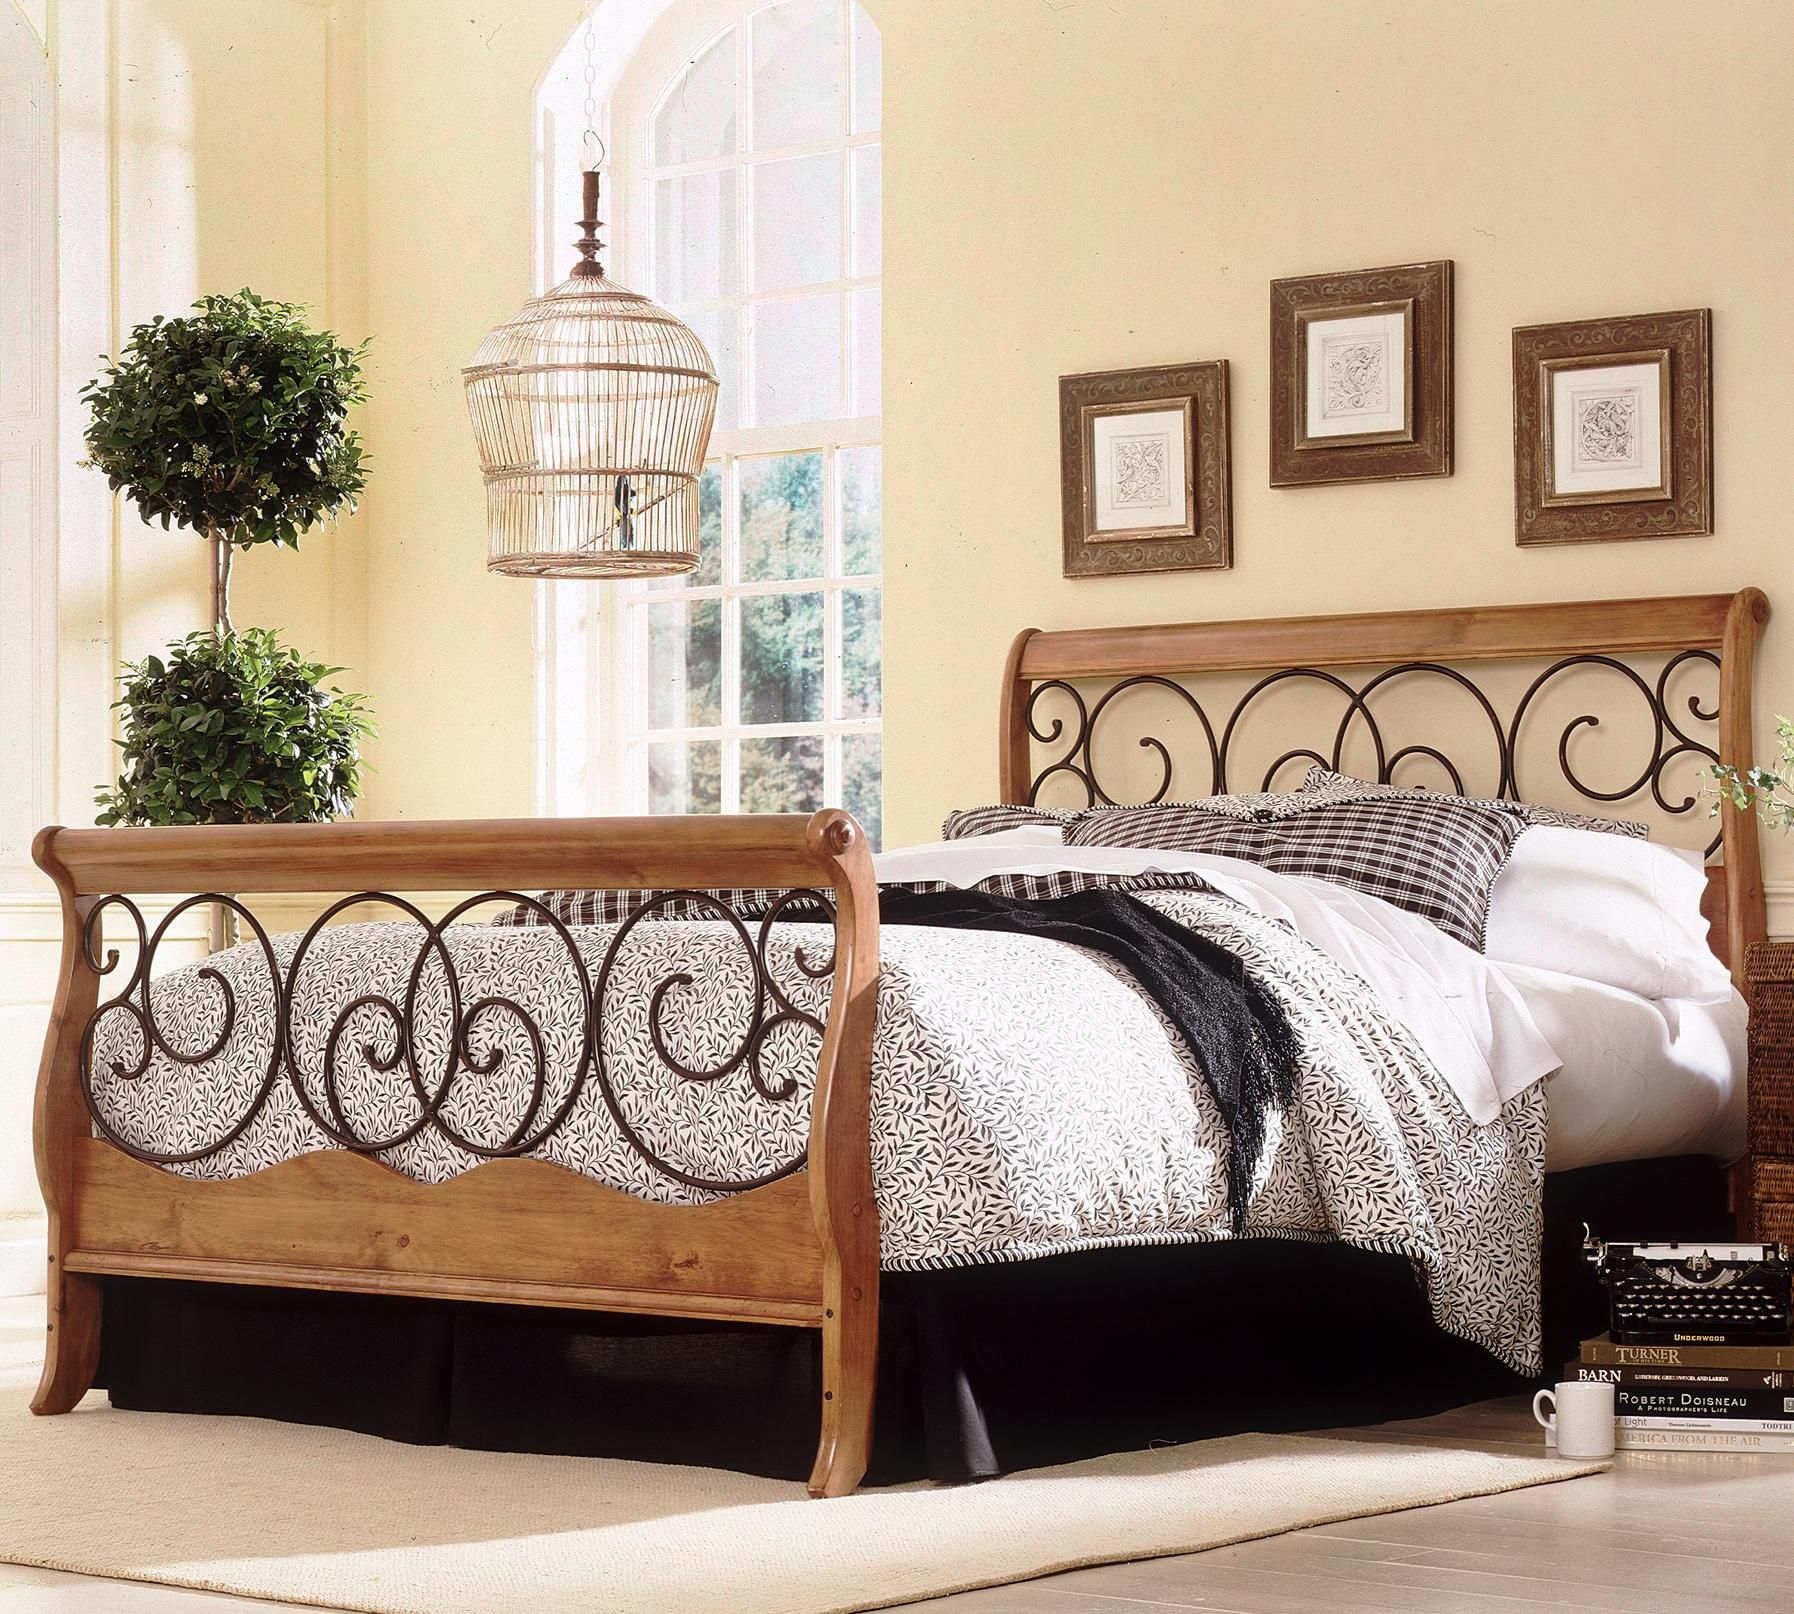 Metal headboard bed frame - 1000 Images About Beds On Pinterest Copper Solid Oak And